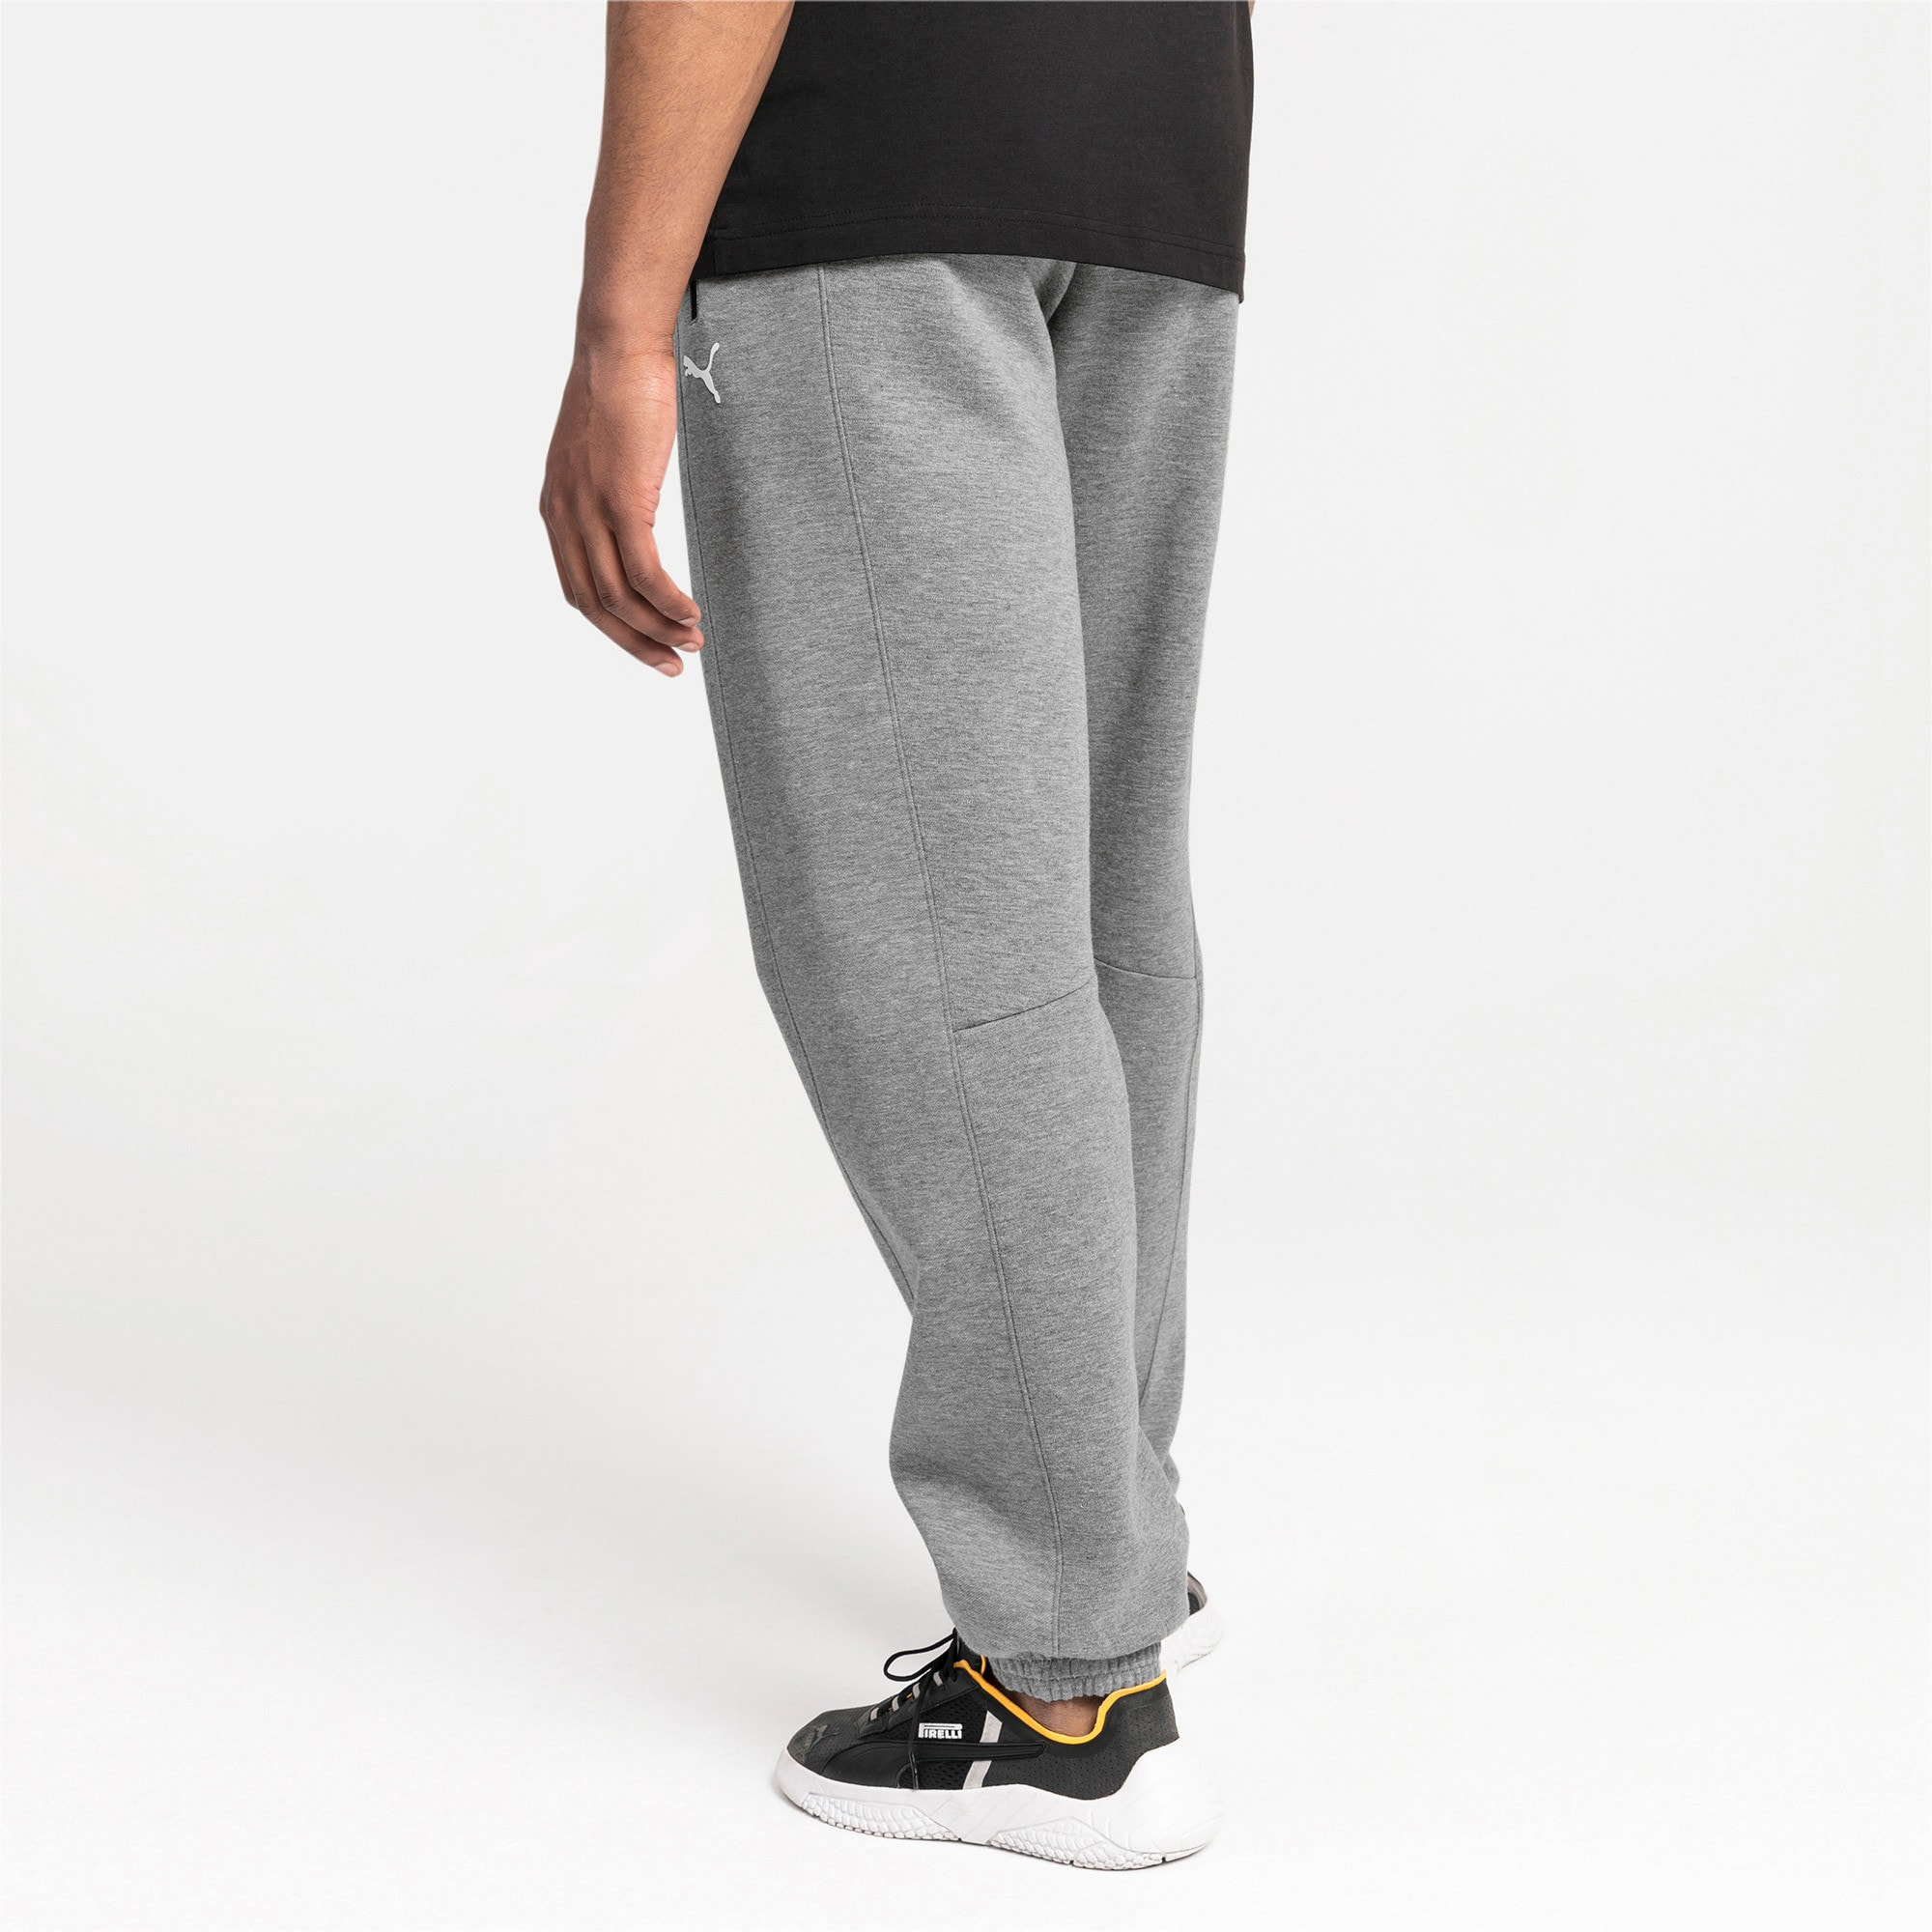 Thumbnail 2 van Ferrari joggingbroek voor mannen, Medium Gray Heather, medium